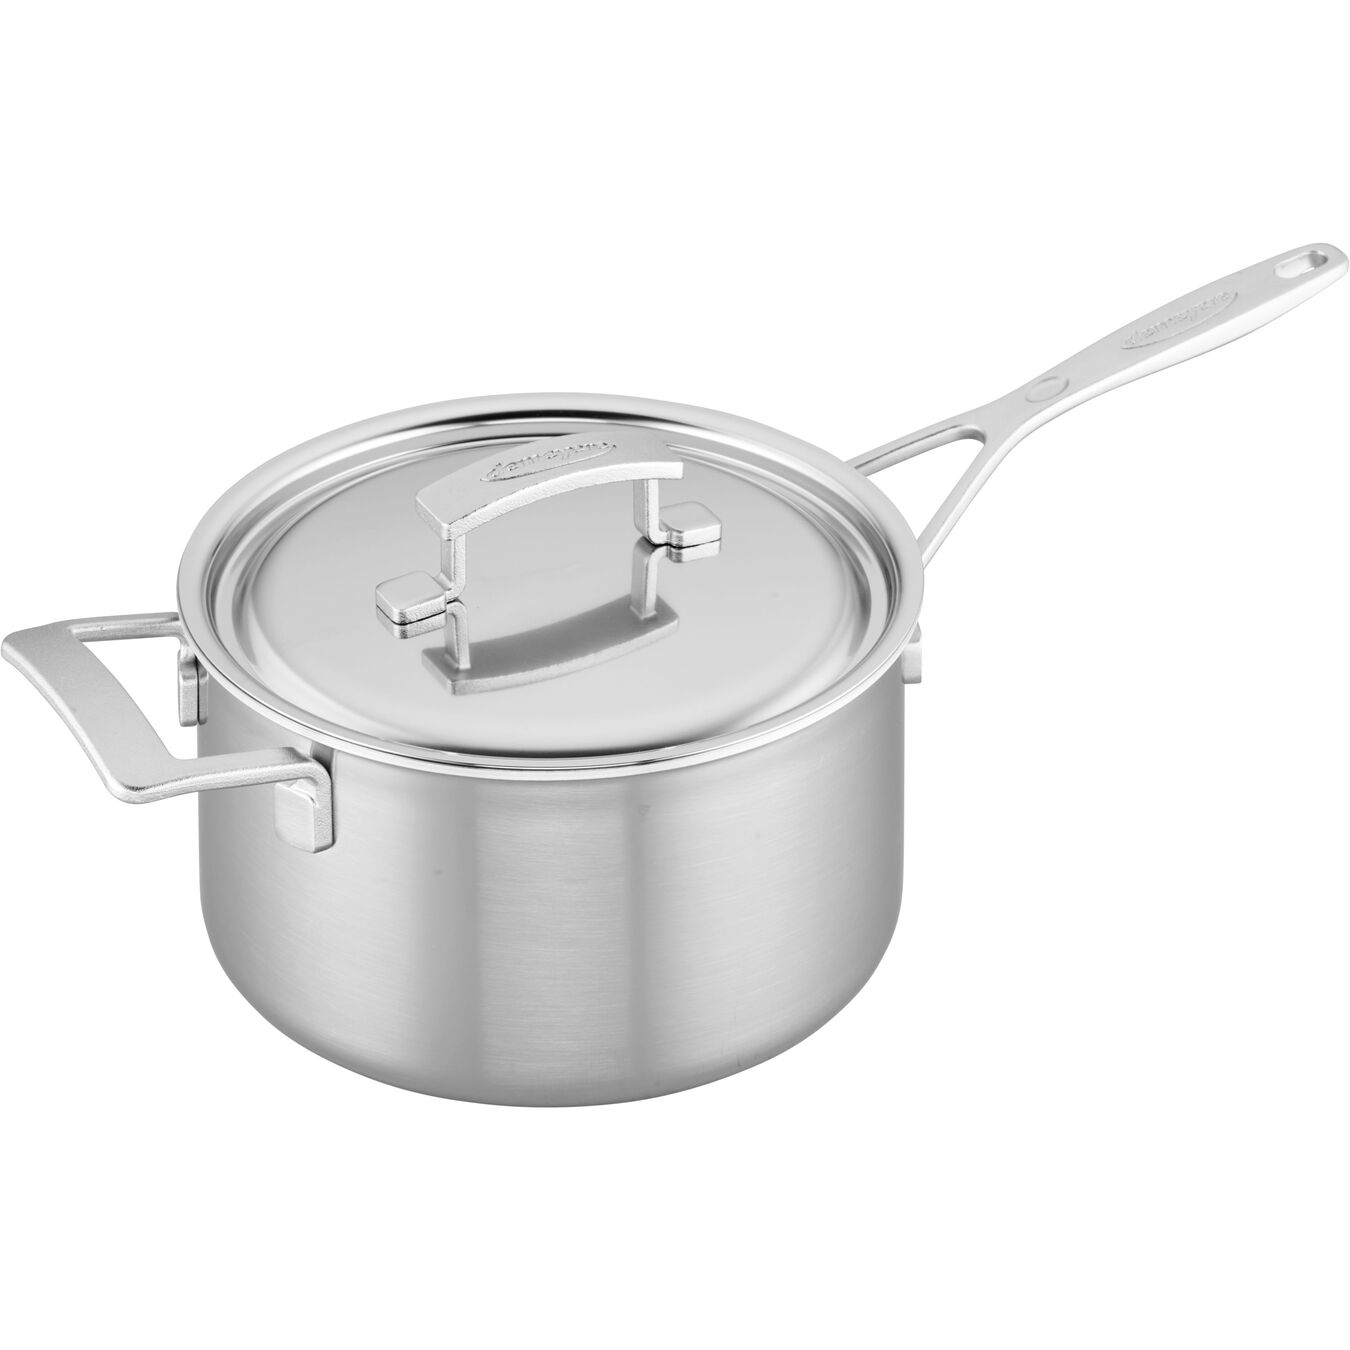 4-qt Stainless Steel Saucepan,,large 1